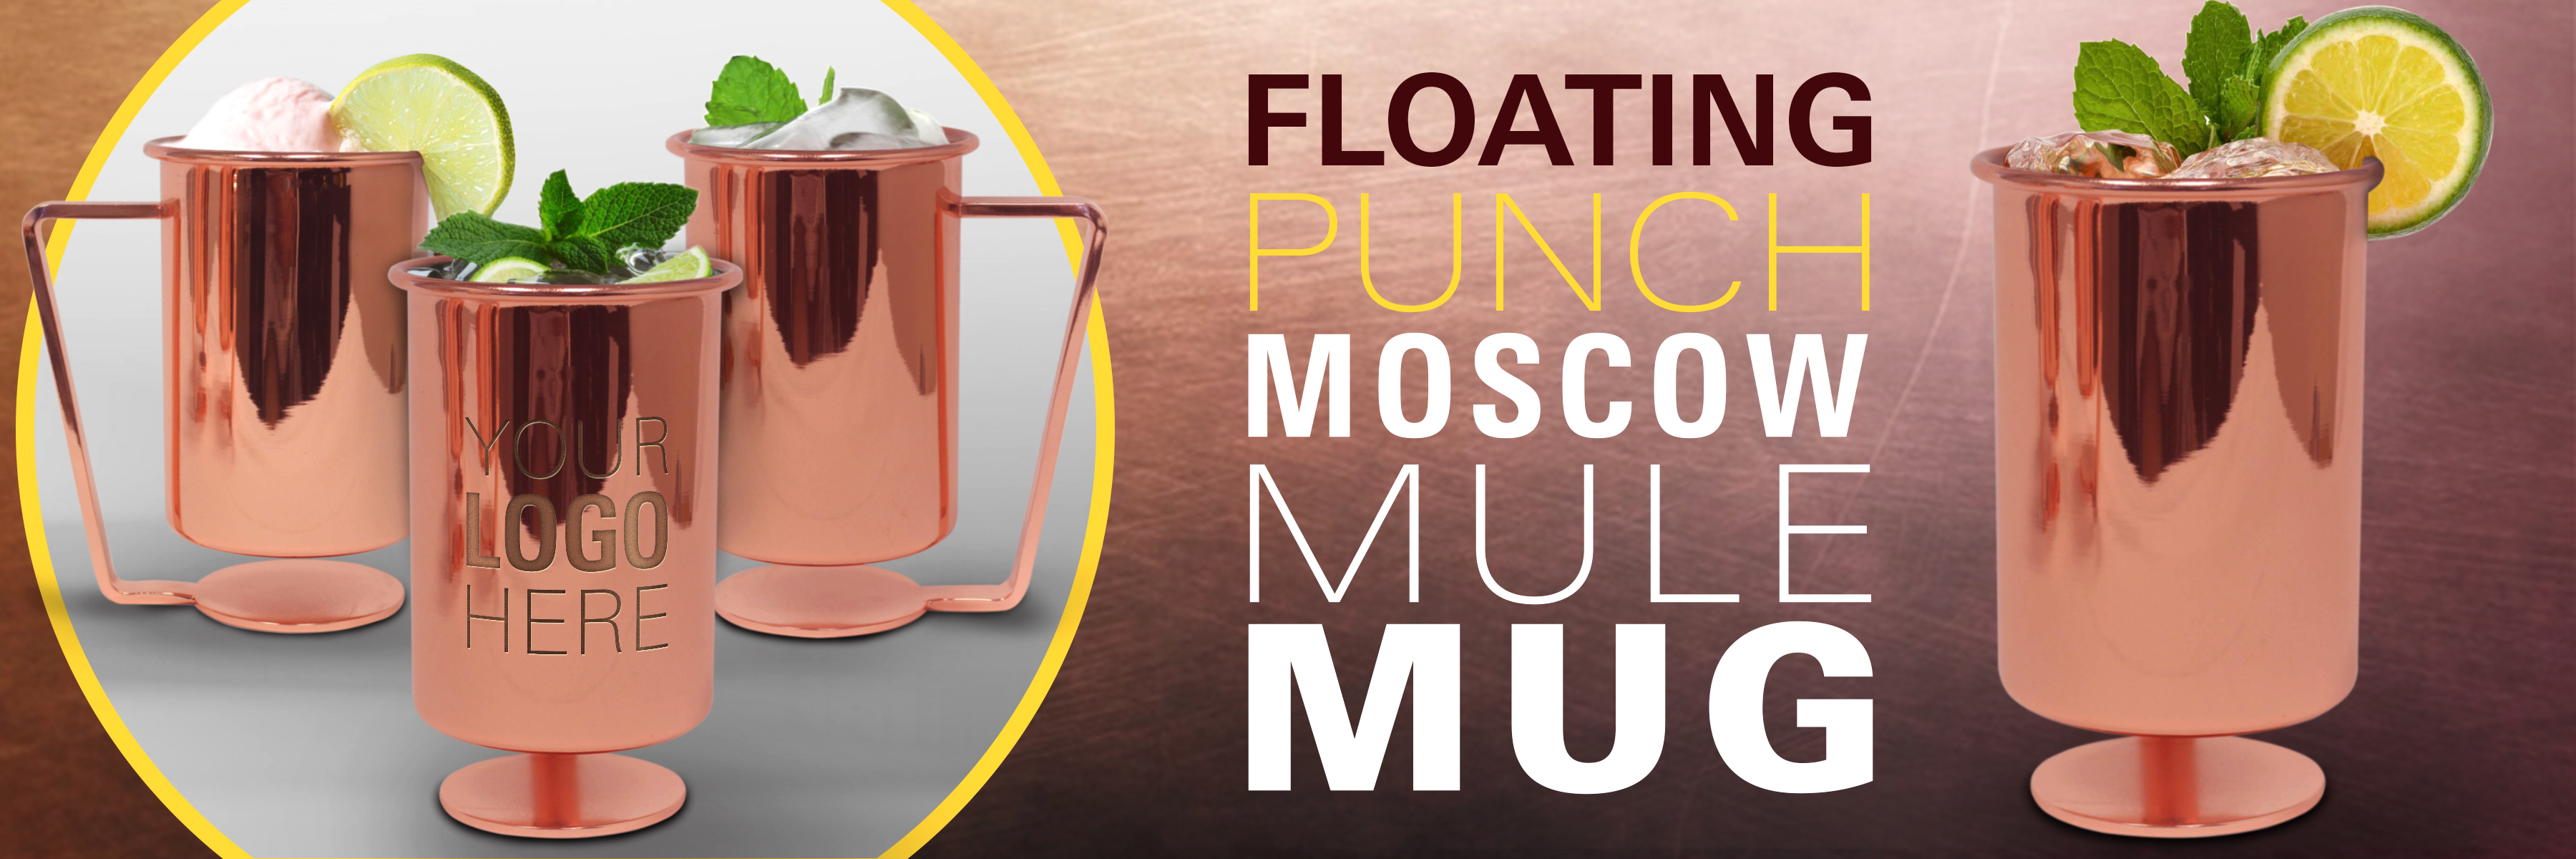 floating moscow mule mug punch